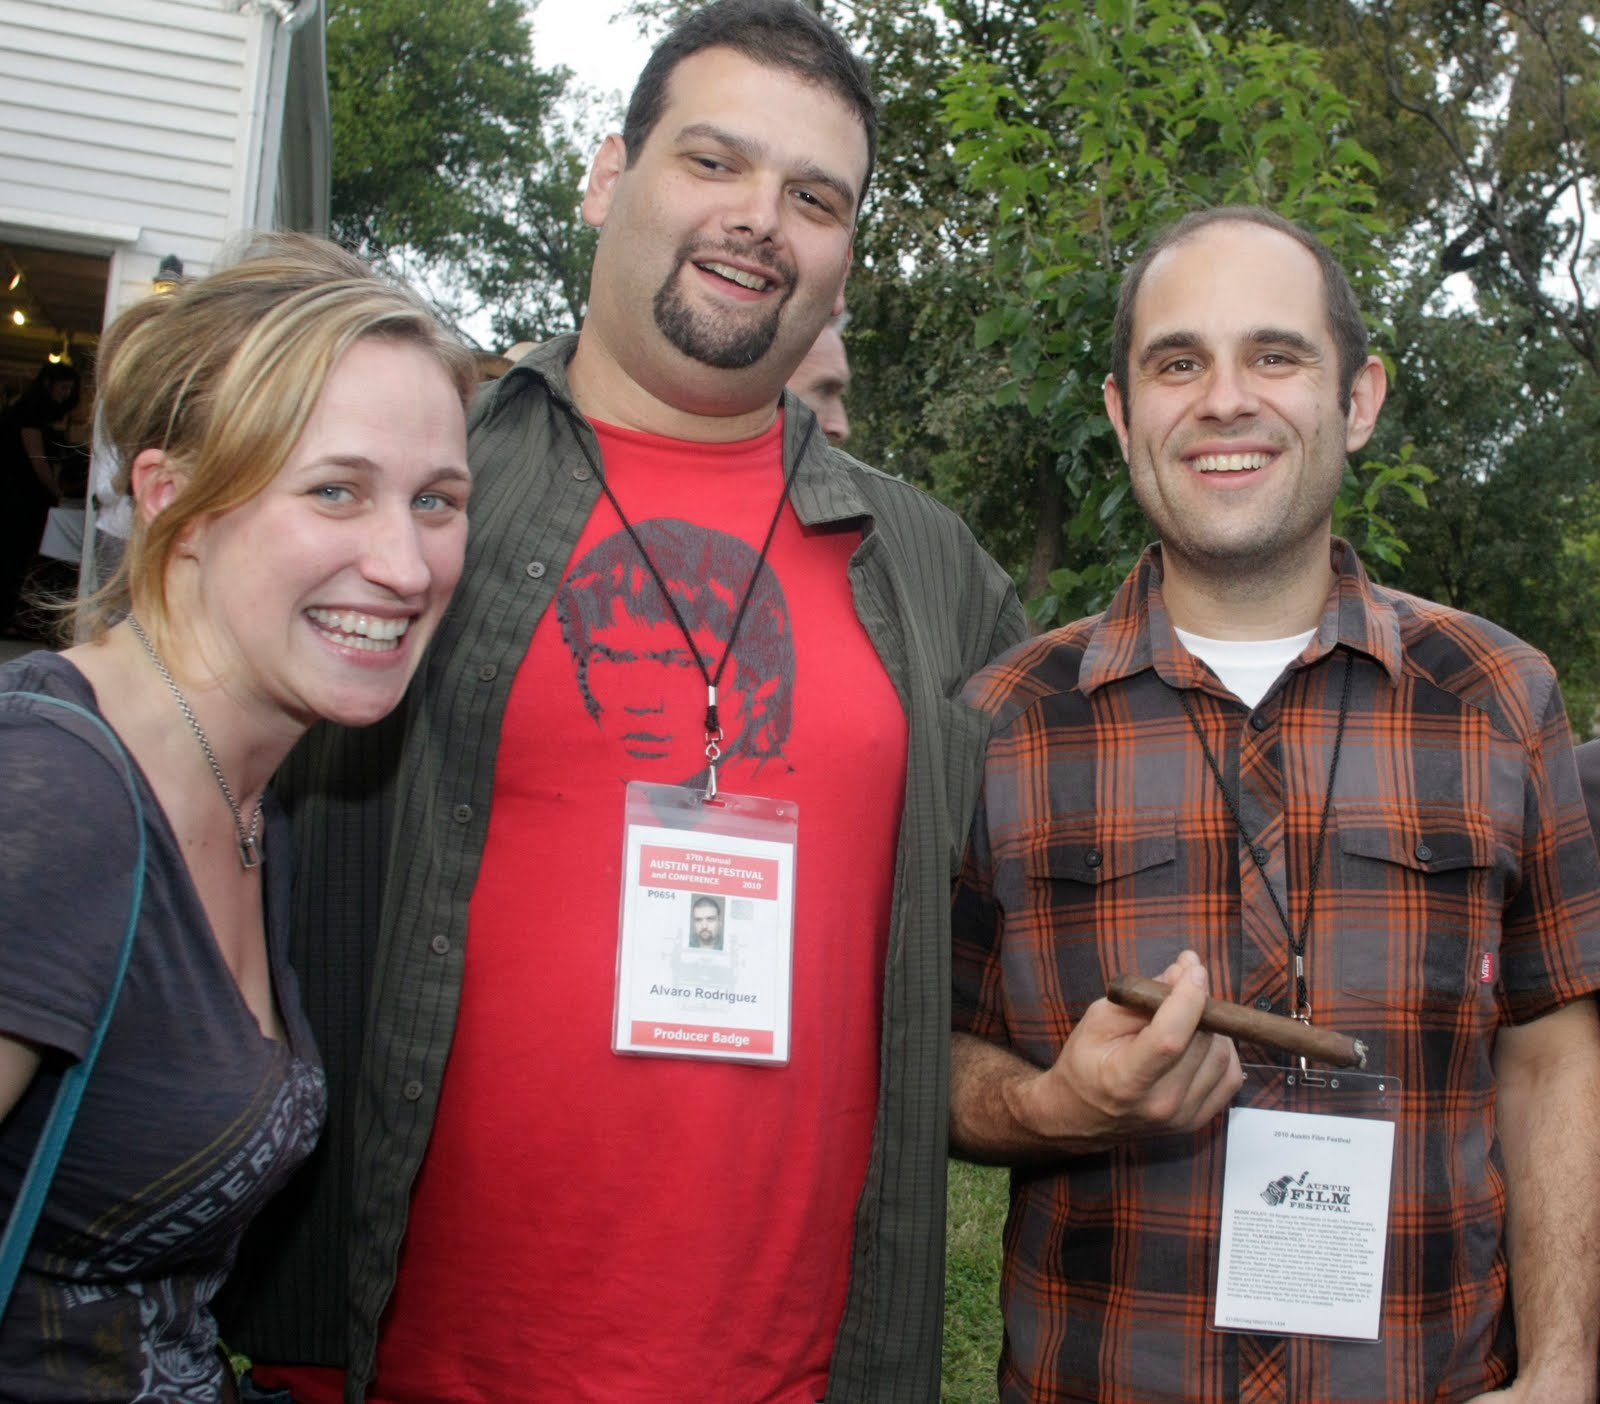 Pamela Ribon, Álvaro Rodríguez and Craig Mazin at the 2010 Film Texas BBQ. Photo credit Jack Plunkett.